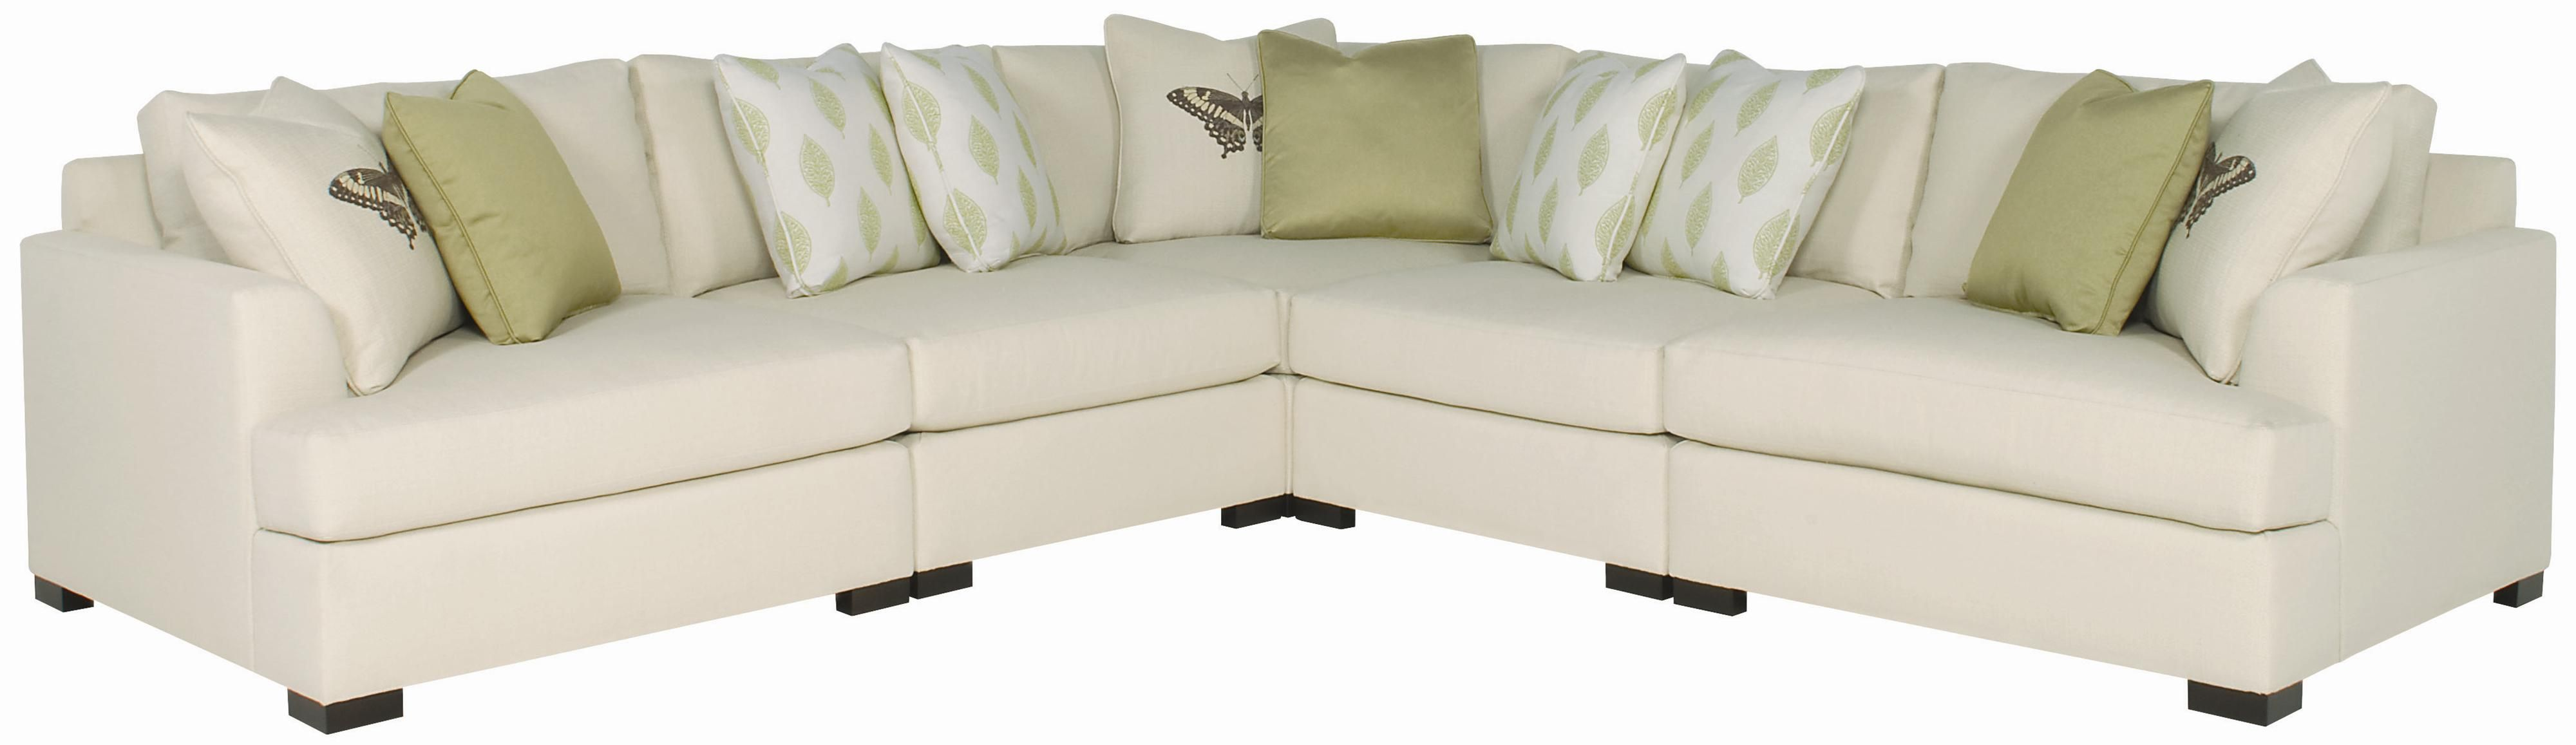 Adriana Sectional Sofa by Bernhardt sectional